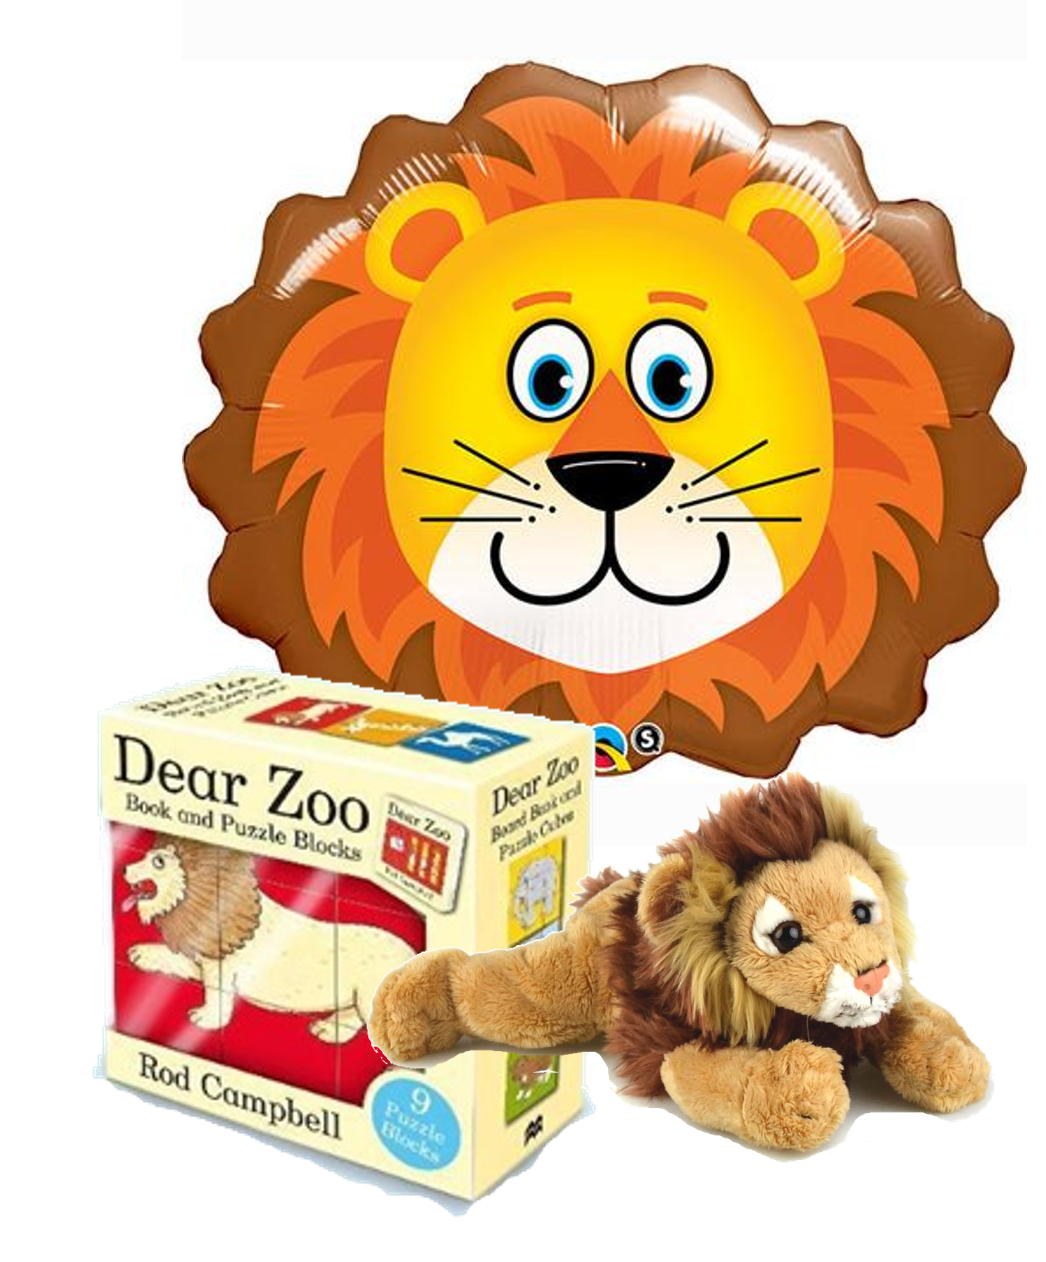 Zoo clipart dear zoo. Lion gift combo teddy